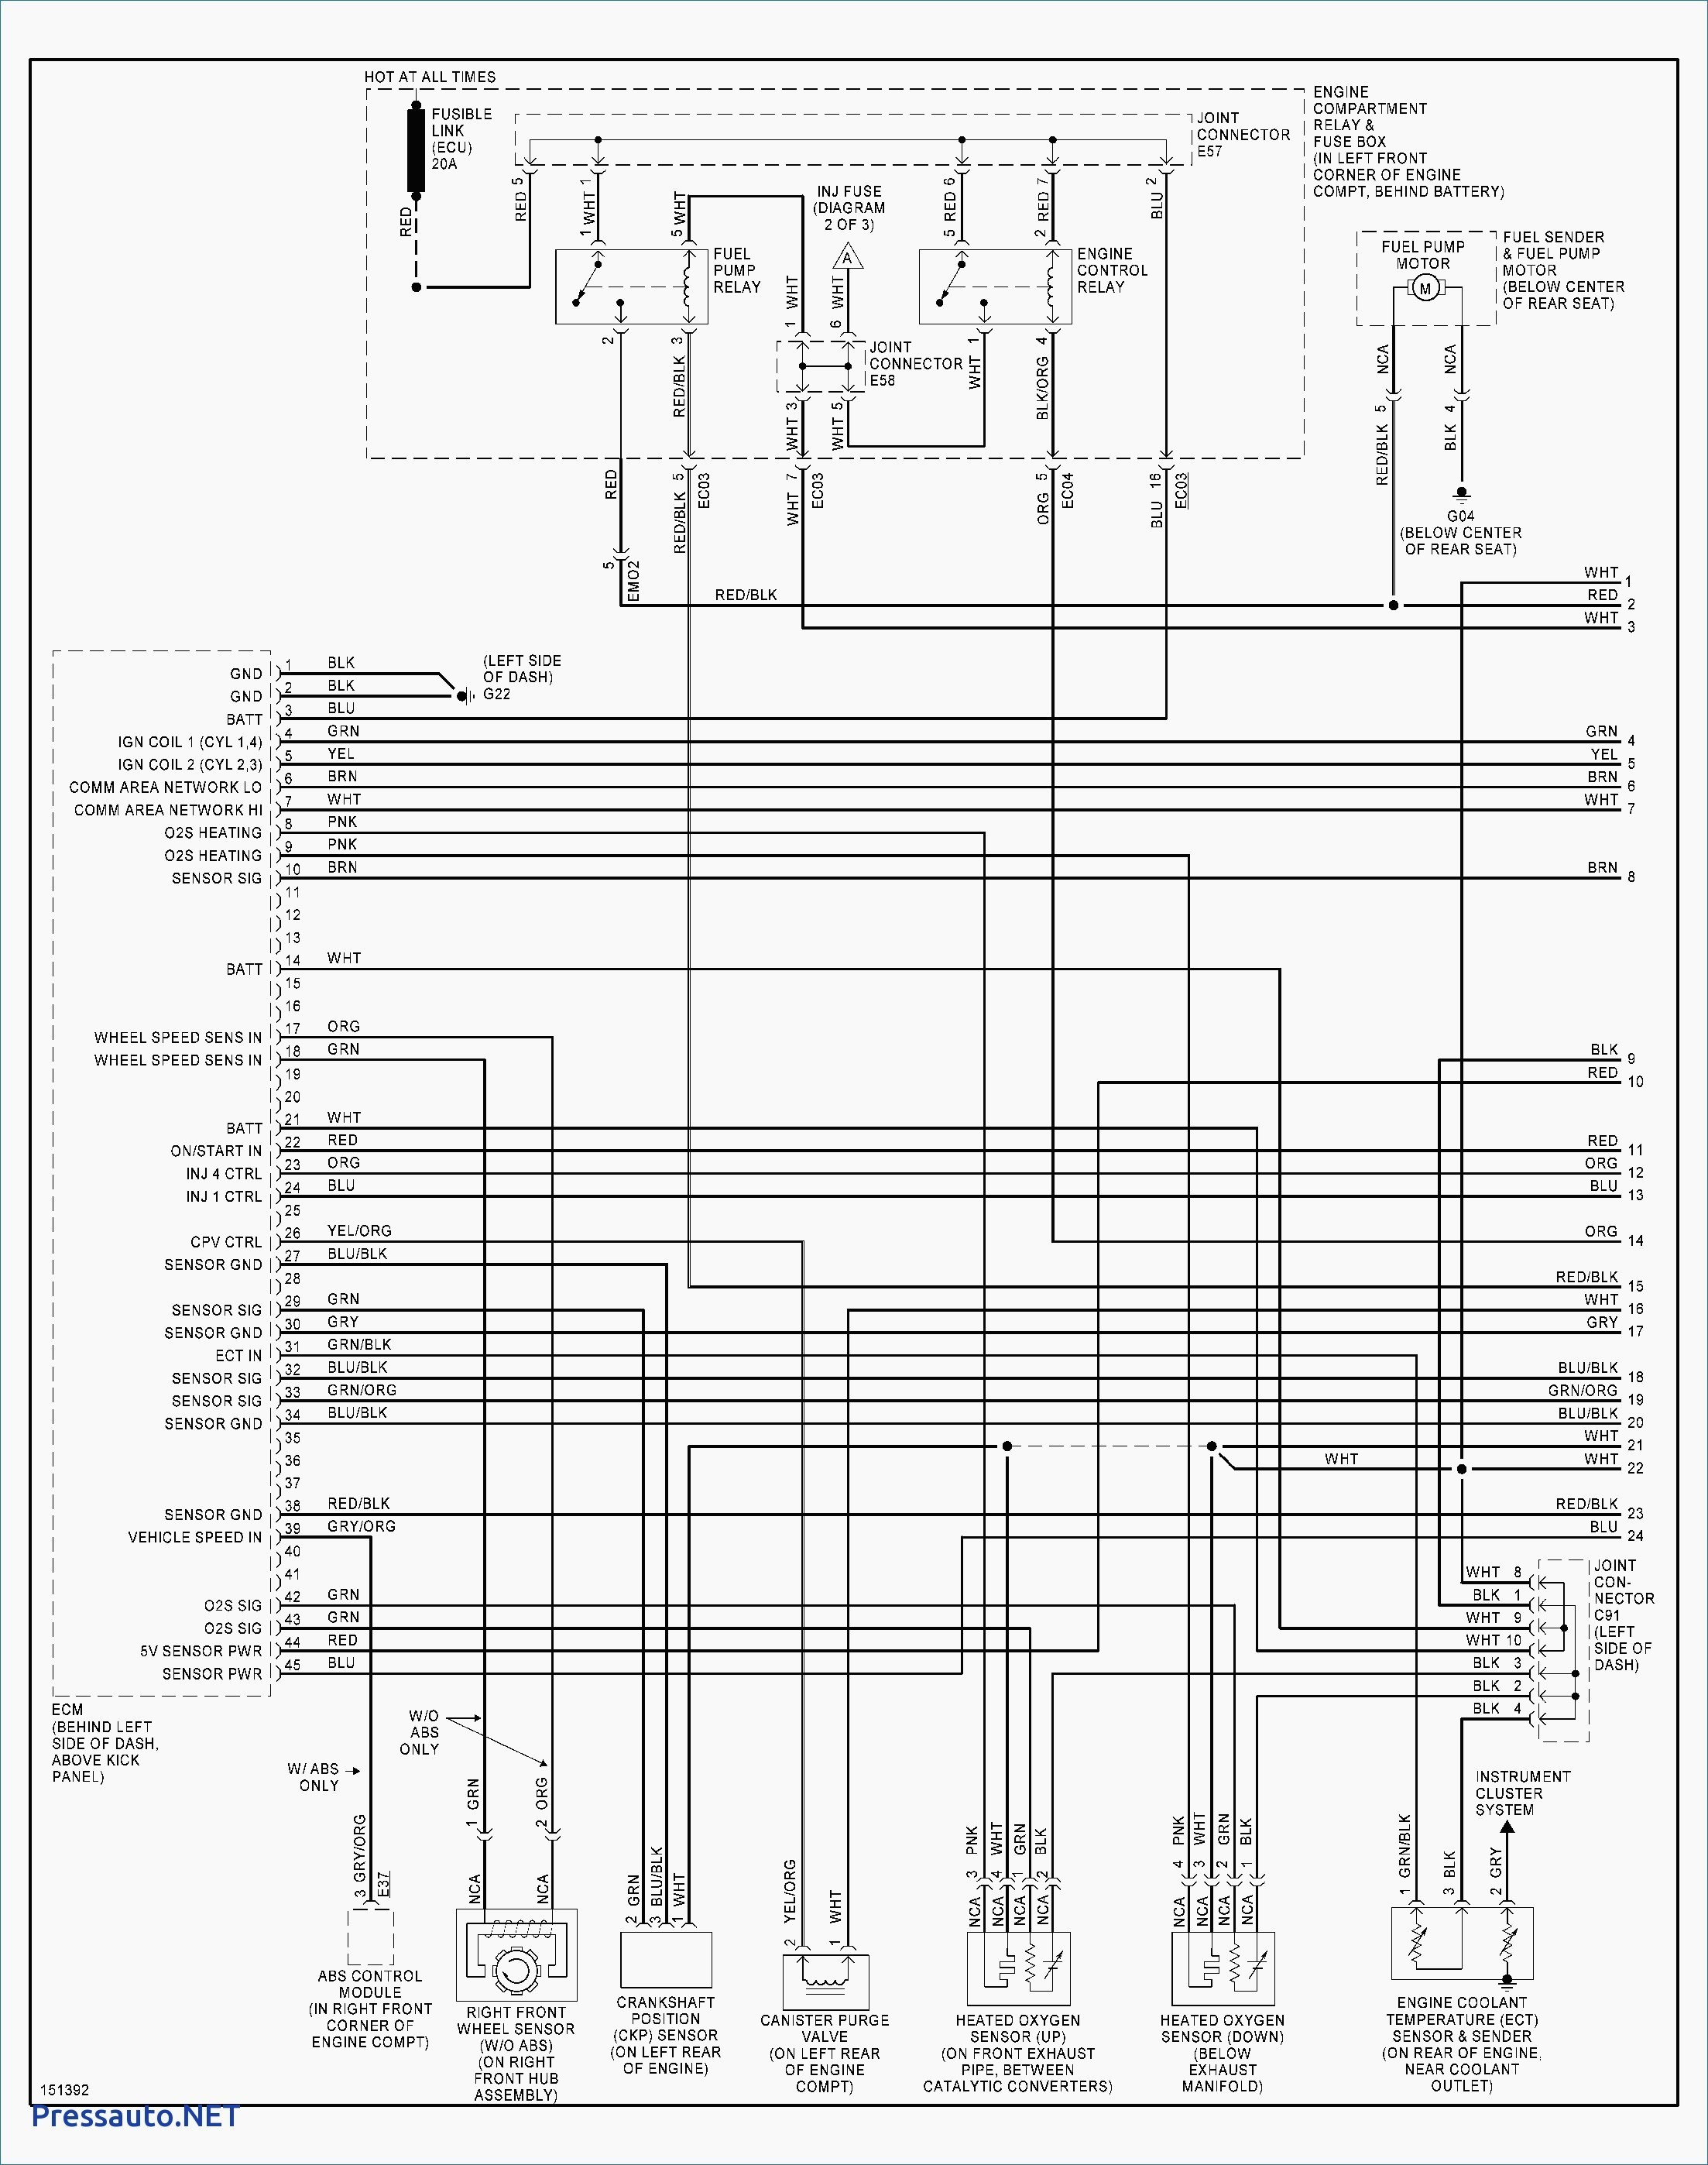 wiring diagram 2001 hyundai xg300 basic wiring diagram u2022 rh  rnetcomputer co 2002 Hyundai Santa Fe Engine Diagram 2001 Hyundai Sonata Engine  Diagram